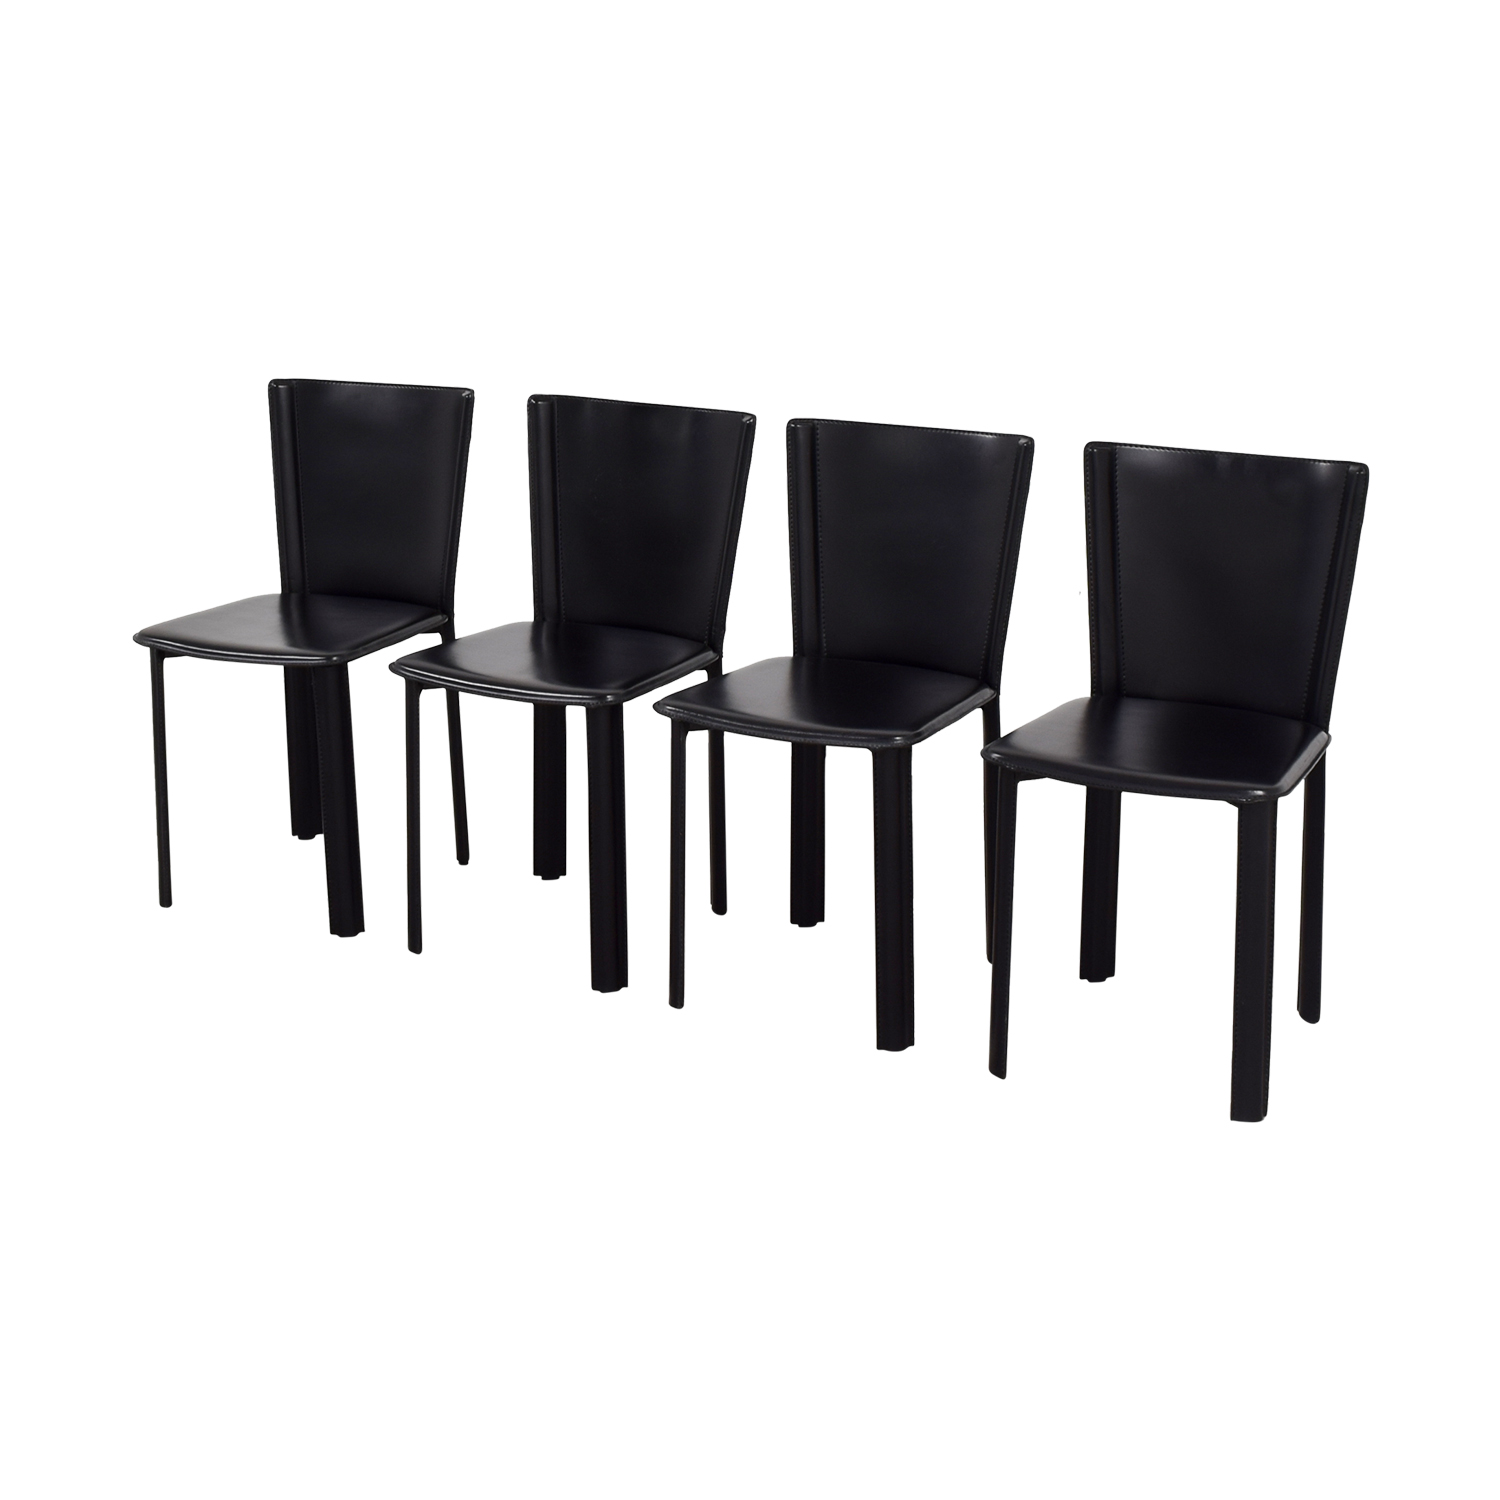 68 off design within reach design within reach allegro black dining chairs chairs - Design within reach bed frame ...